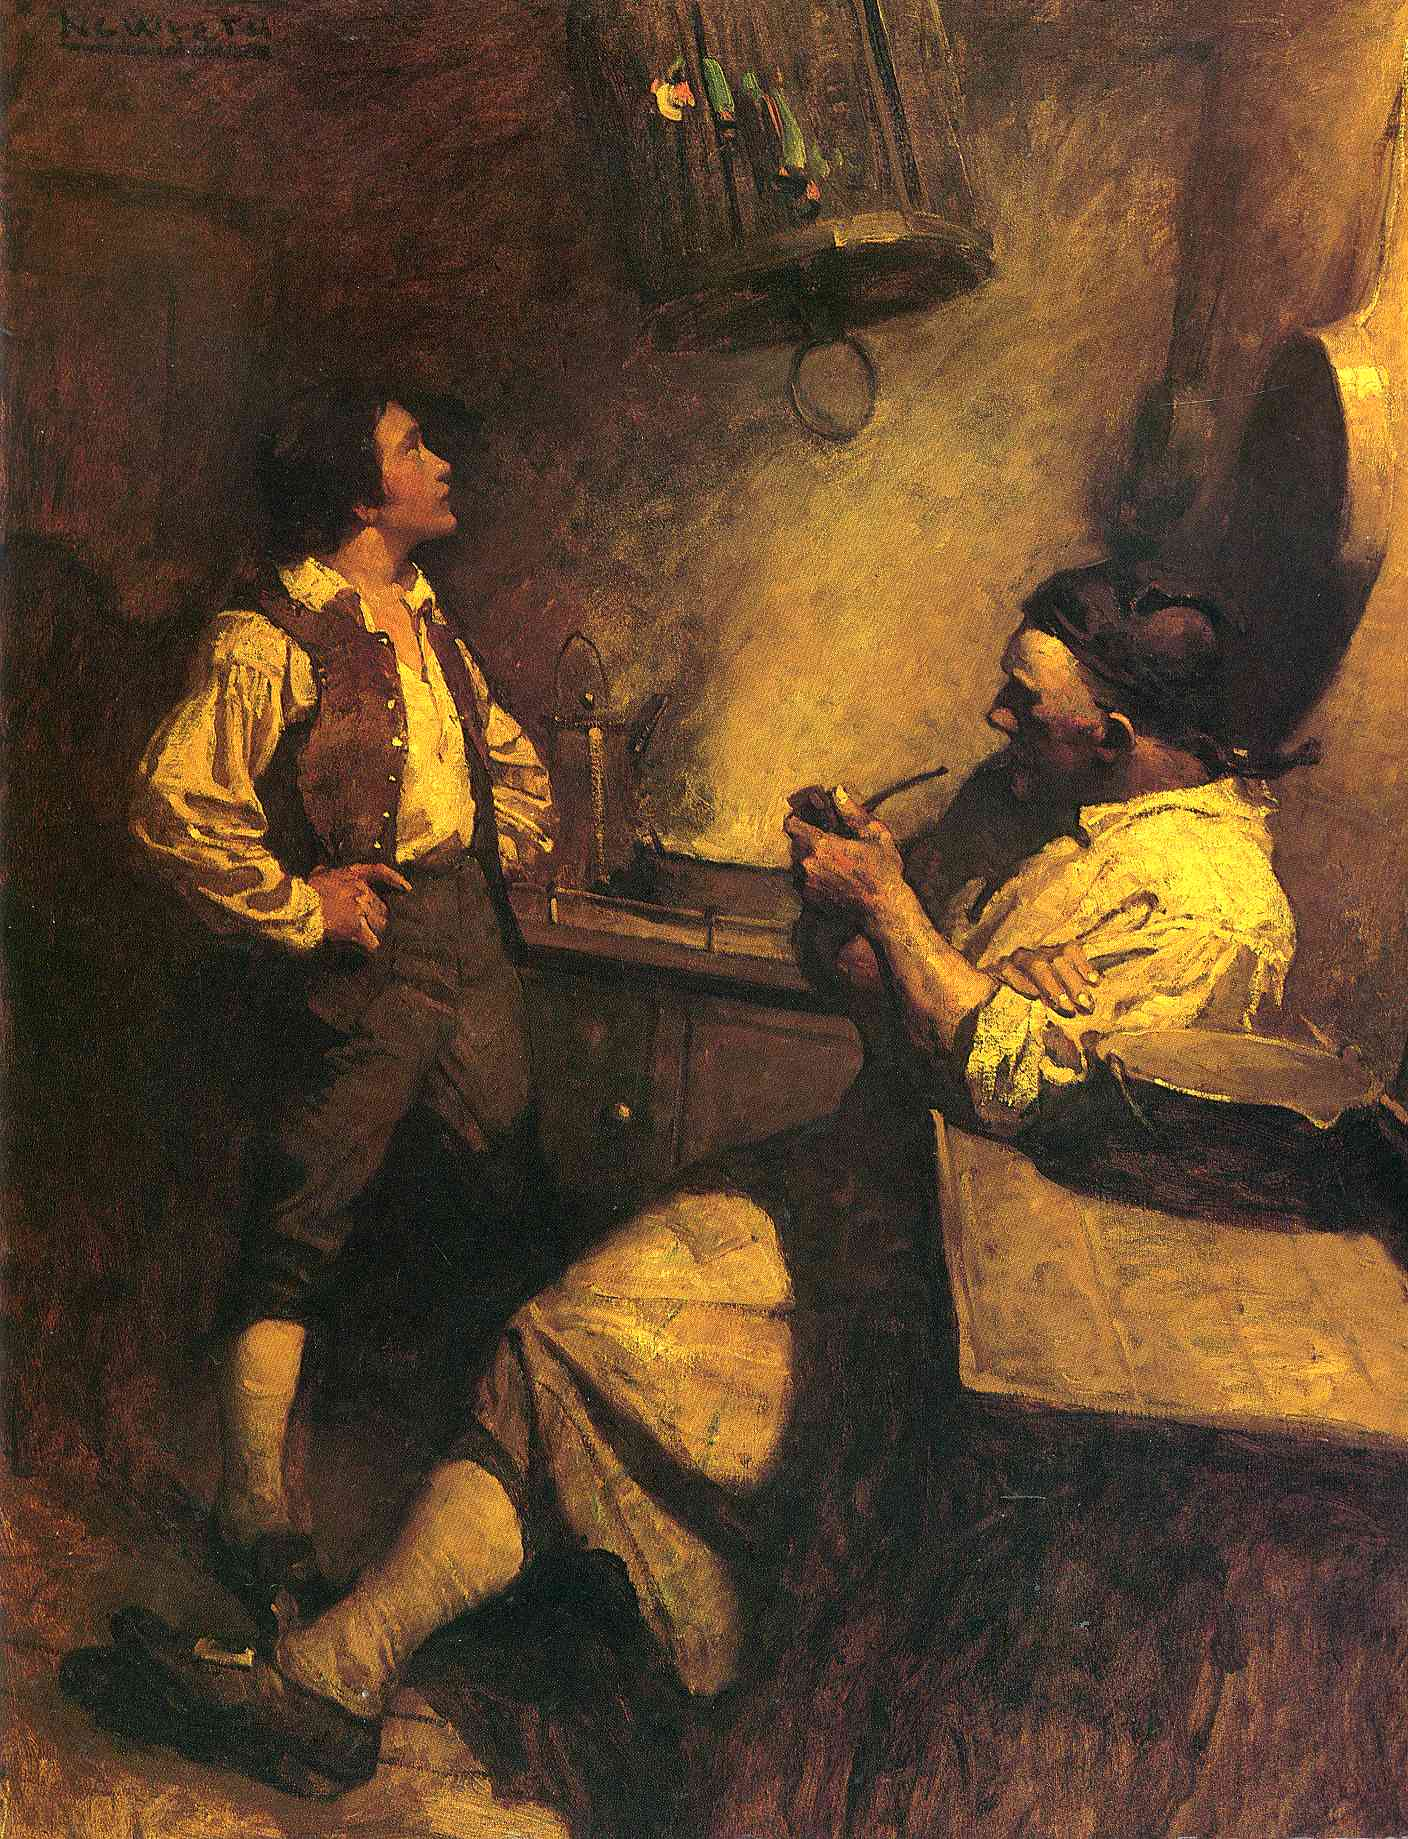 treasure island essay long john silver We will write a custom essay sample on treasure island or any similar long john silver silver shows them the treasure map to appease them.